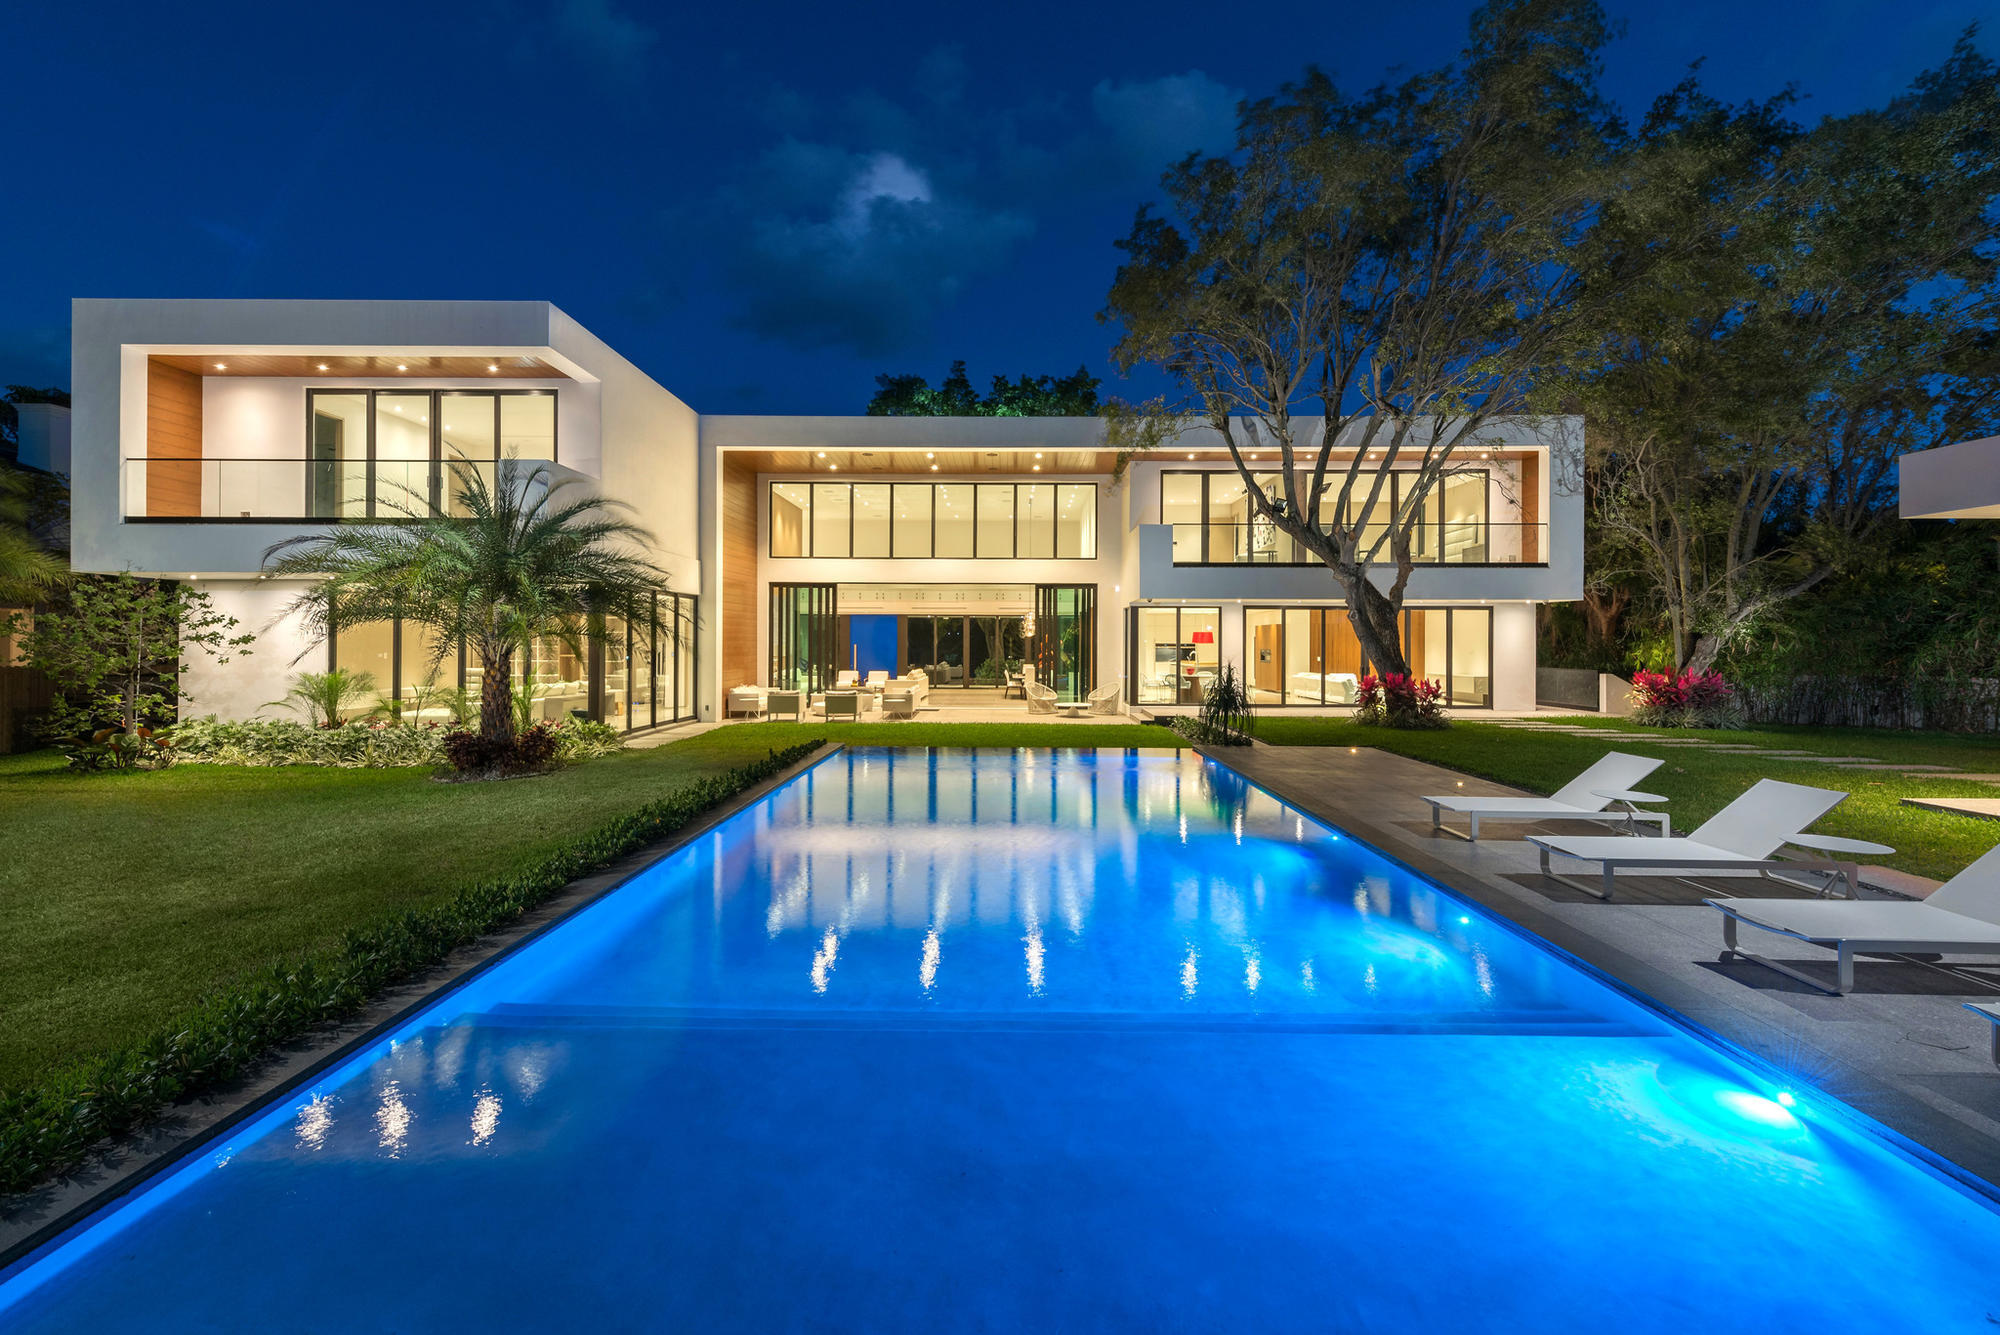 House Of The Week Coconut Grove Modern Mansion Asks 8 8m